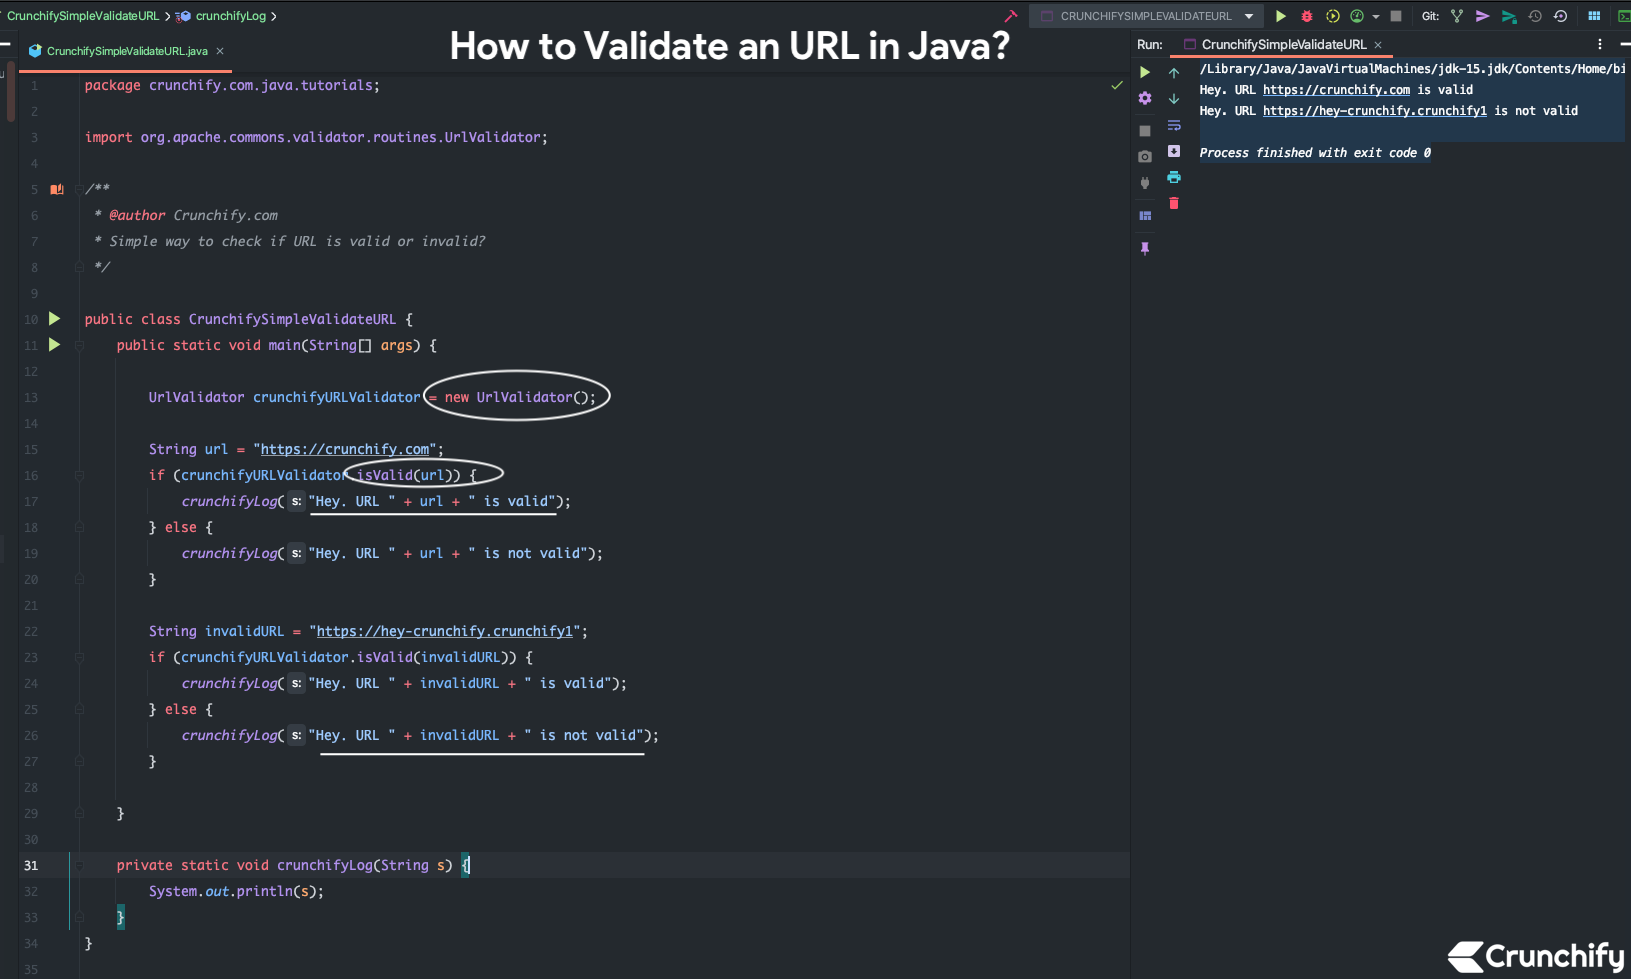 How to Validate an URL in Java